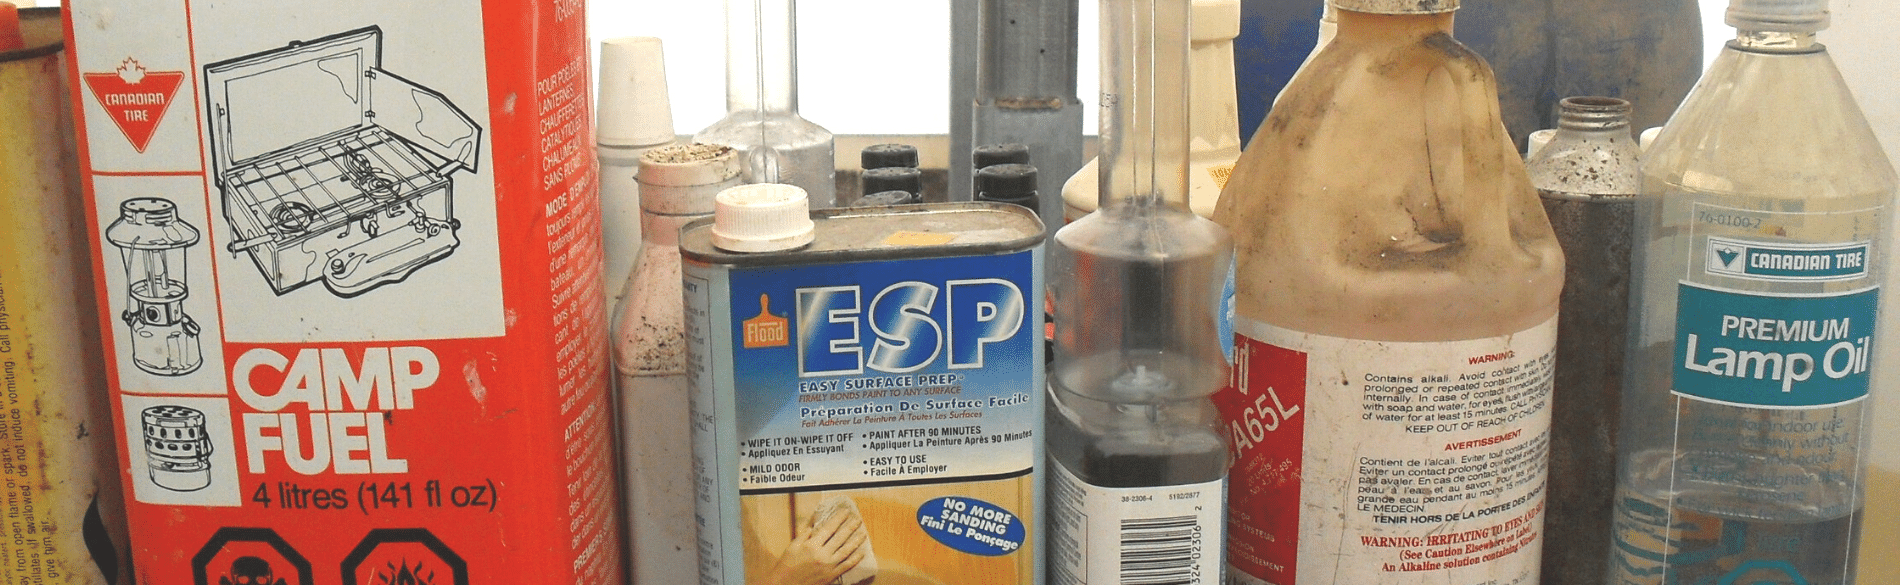 hazardous waste bottles with cleaners and camp fuel